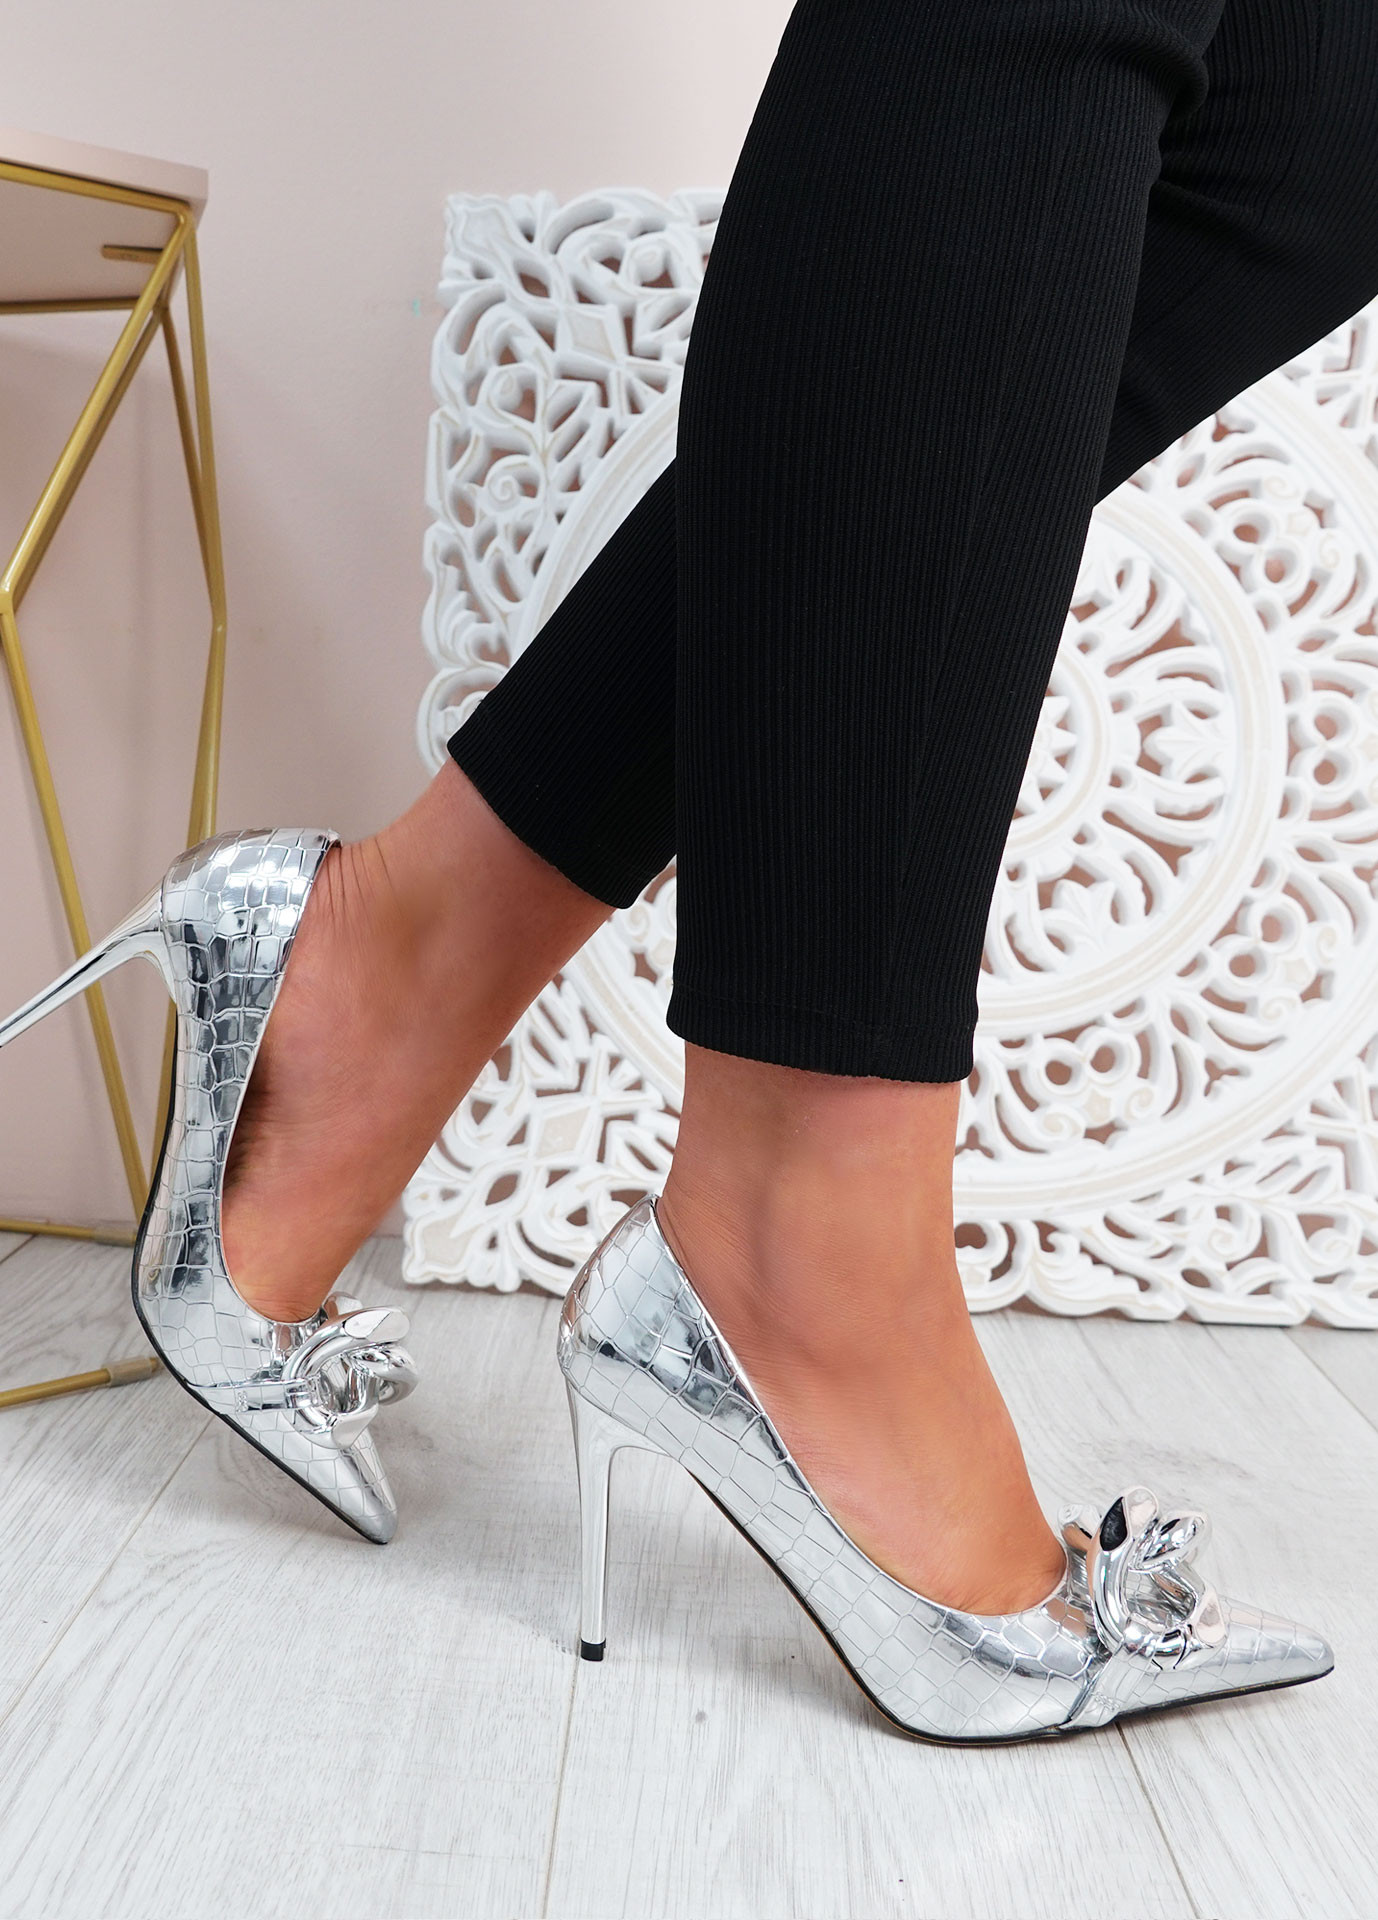 Antonia Silver High Heels Chain Shoes